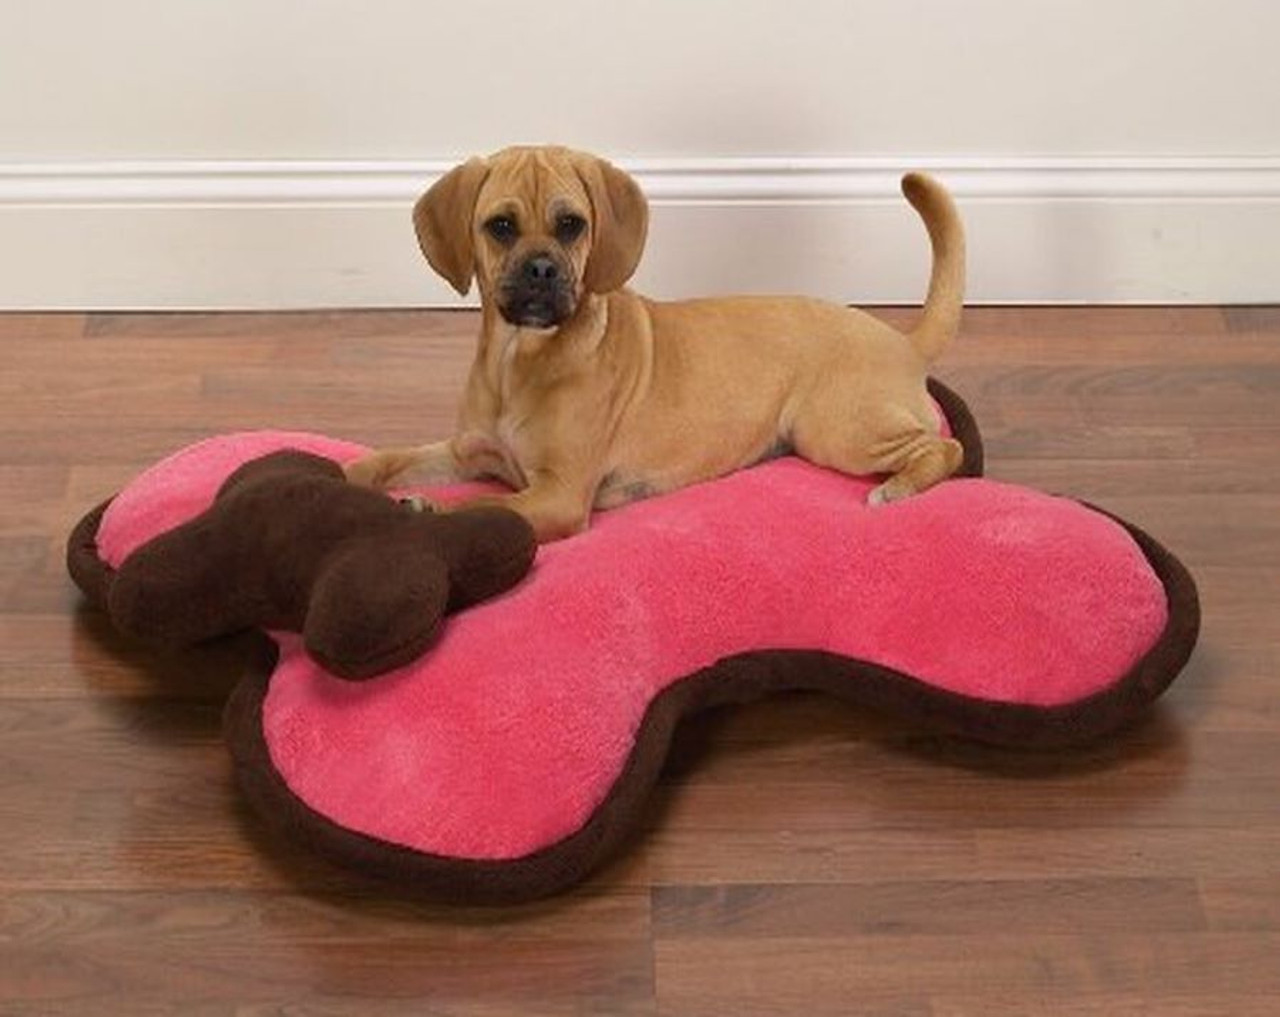 beagle puppy on a pink bone bed with brown head pillow